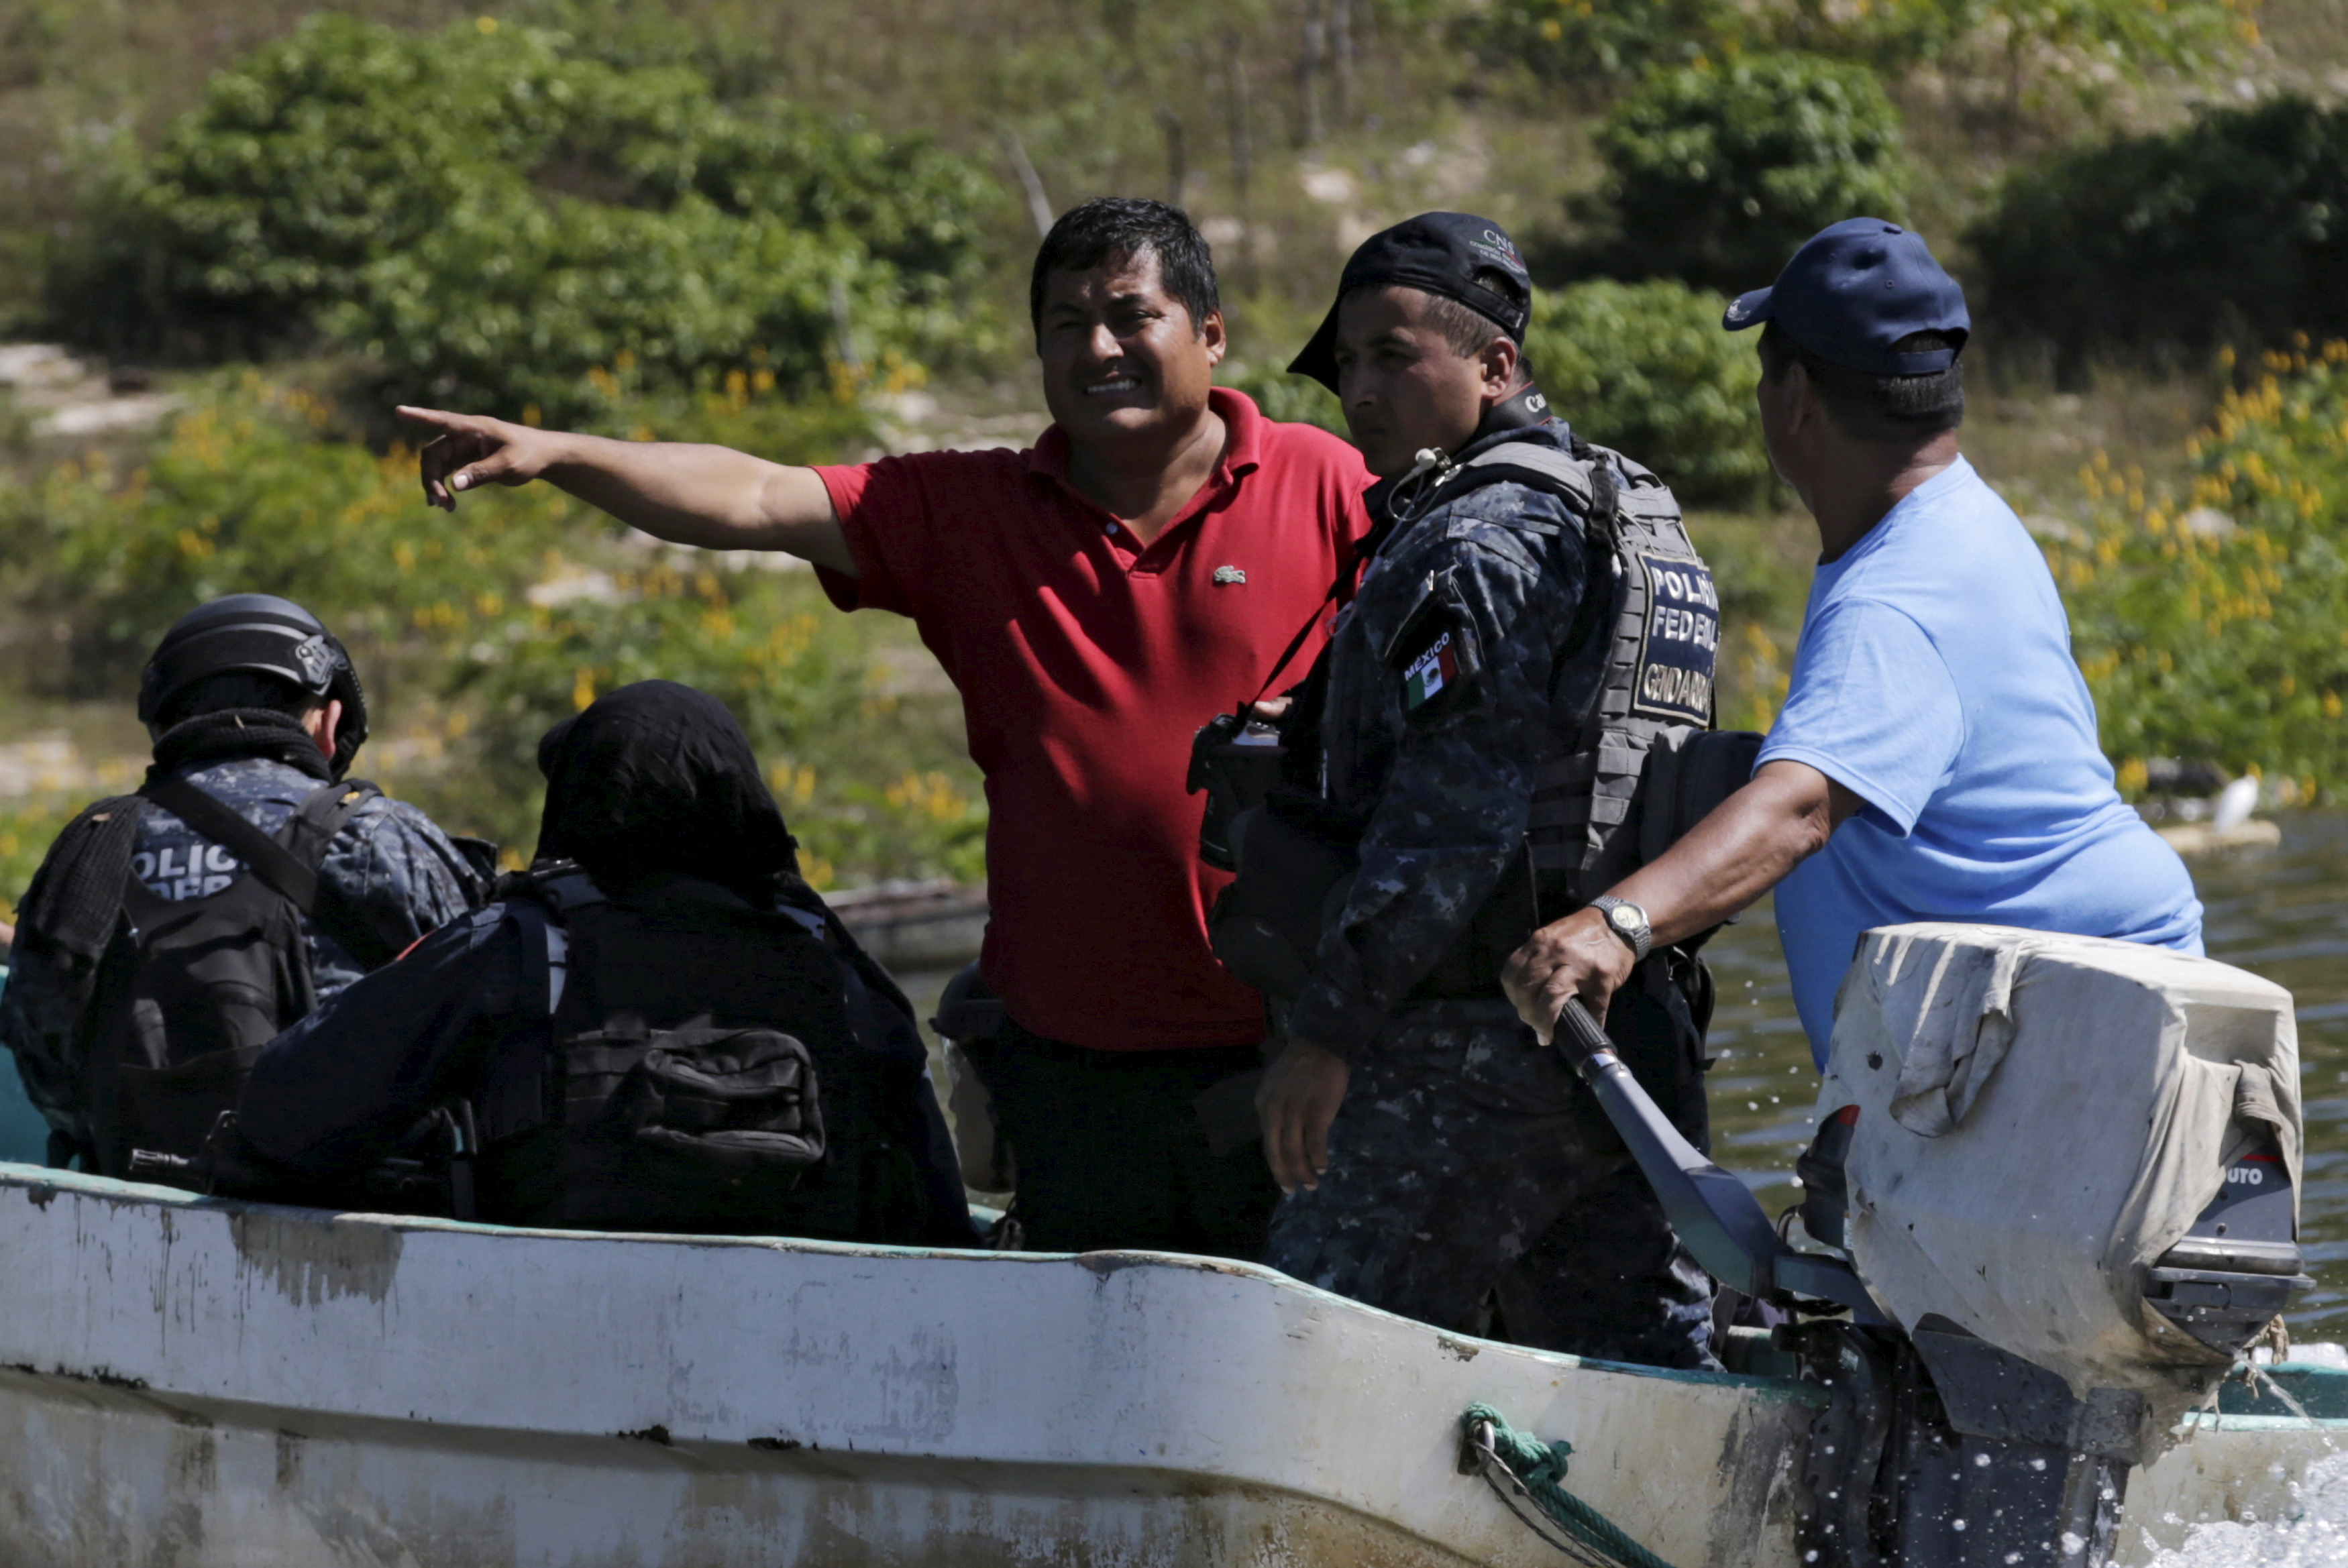 Miguel Angel Jimenez (in red), leader of the community police of Guerrero State (UPOEG), speaks with a federal police on a boat as they seek for the 43 Ayotzinapa students' missing, in Acatlan,  Guerrero, on October 30, 2014.